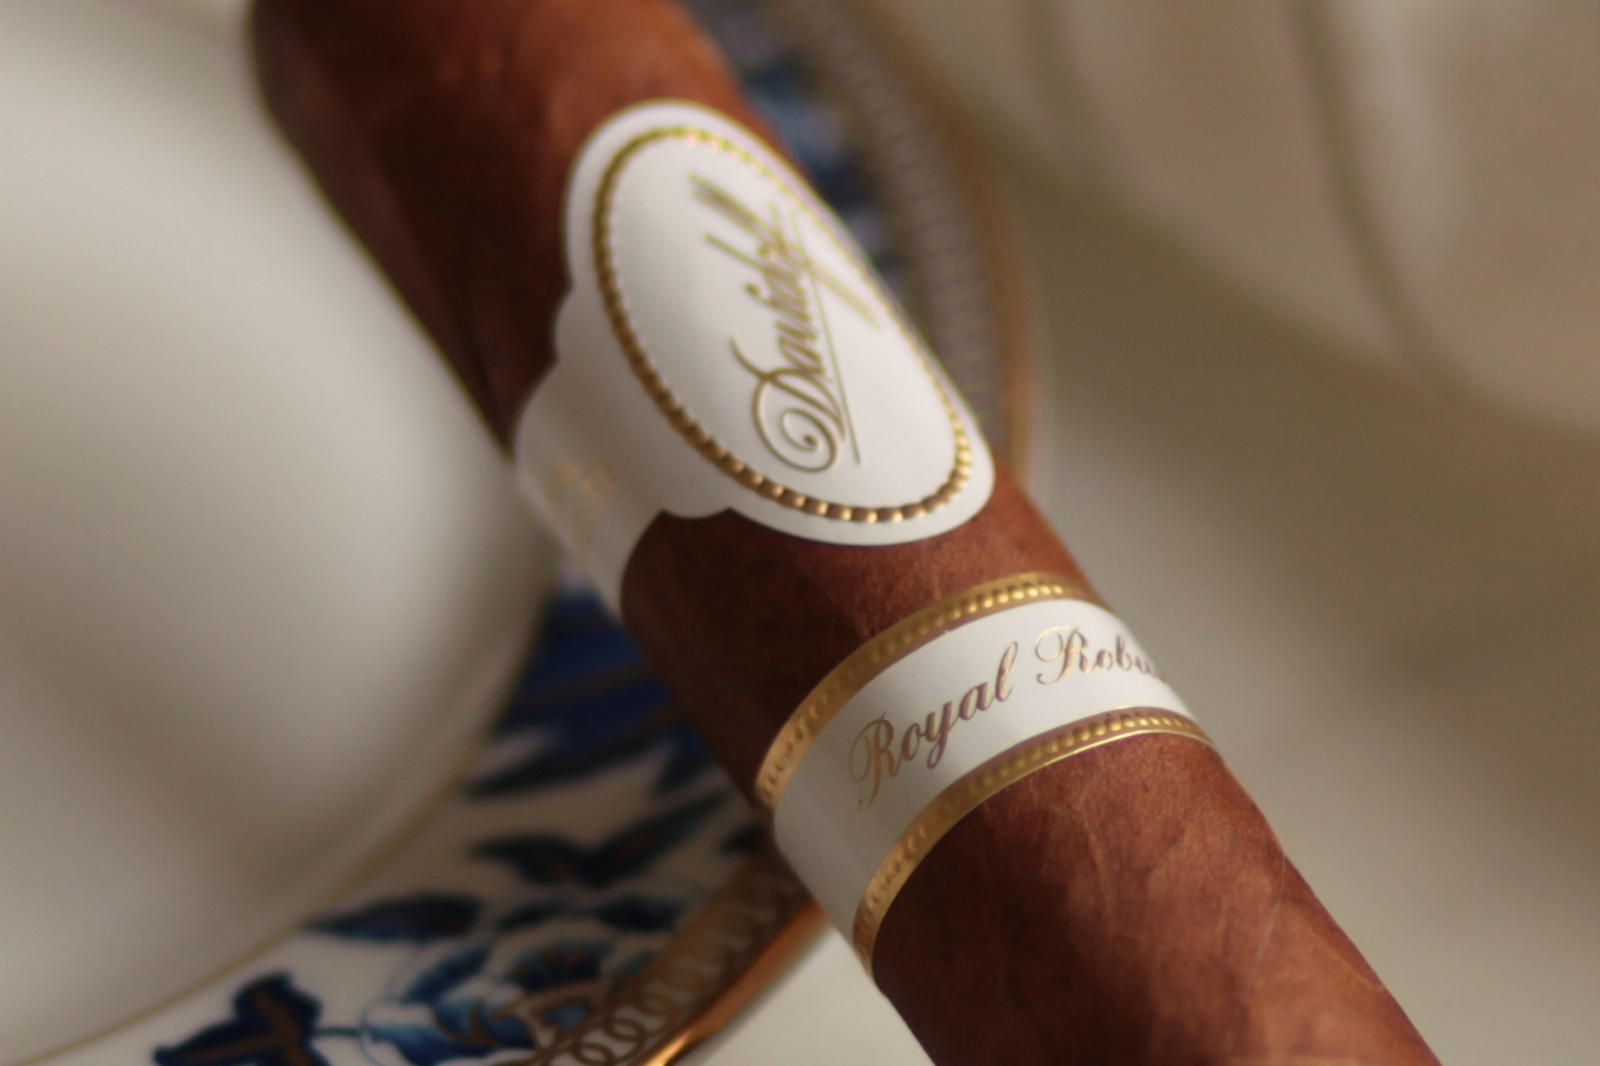 Davidoff Royal Robusto Closeup